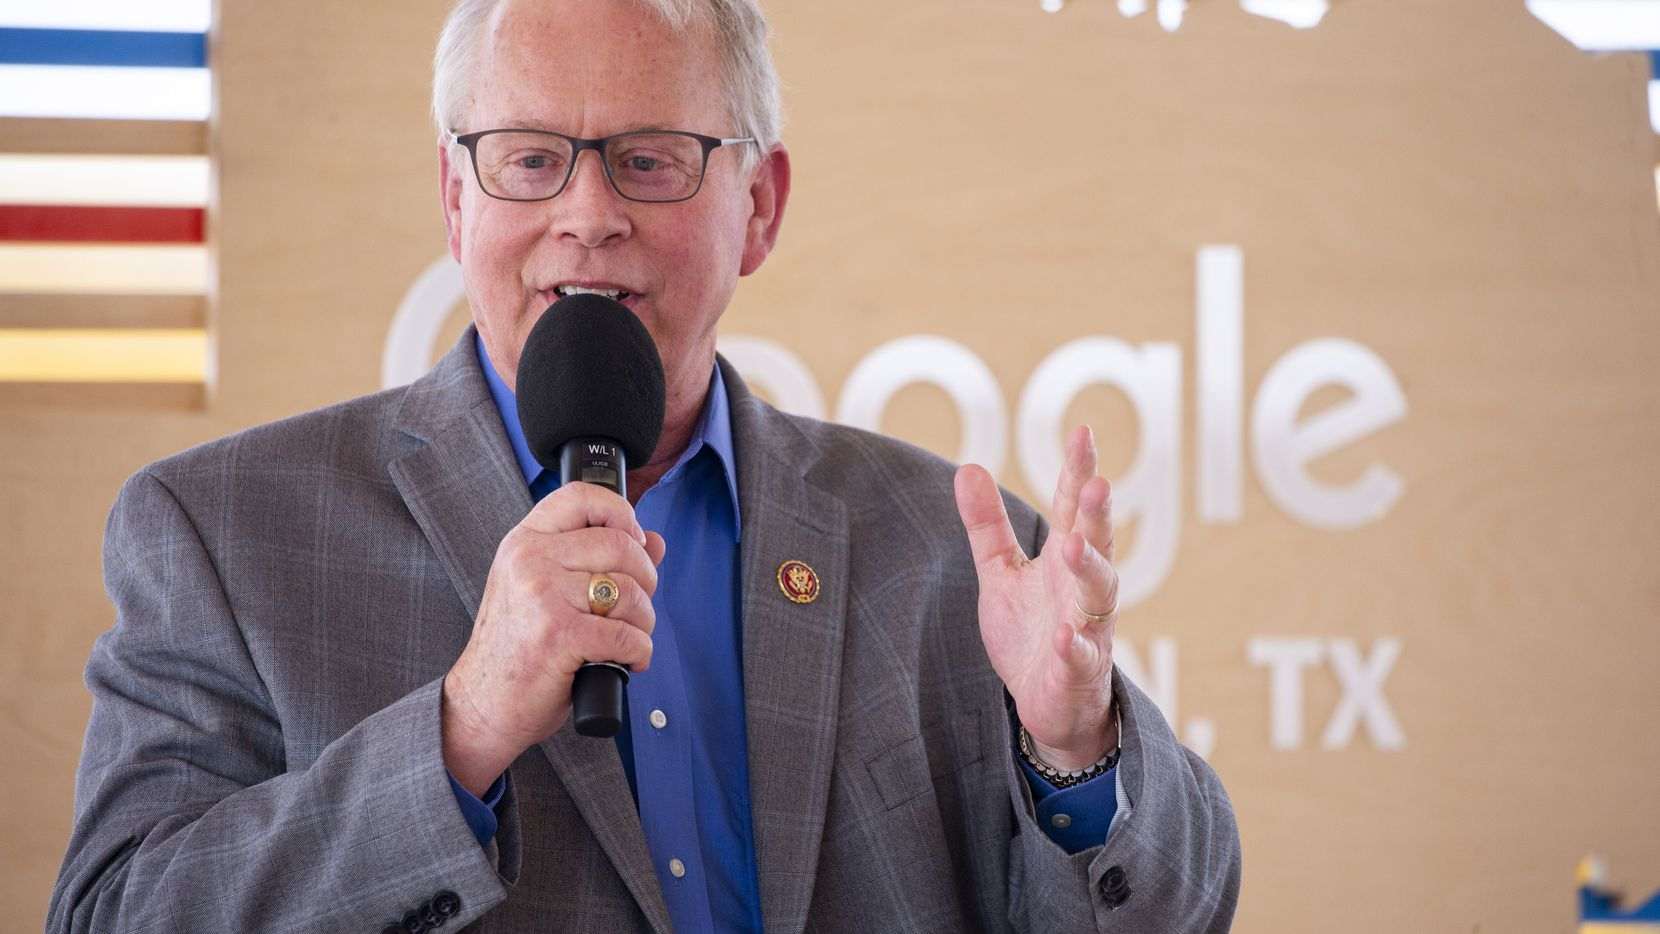 U. S. Representative Ron Wright gives remarks during an announcement of Google's new data center in Midlothian, Texas on Friday, June 14, 2019.